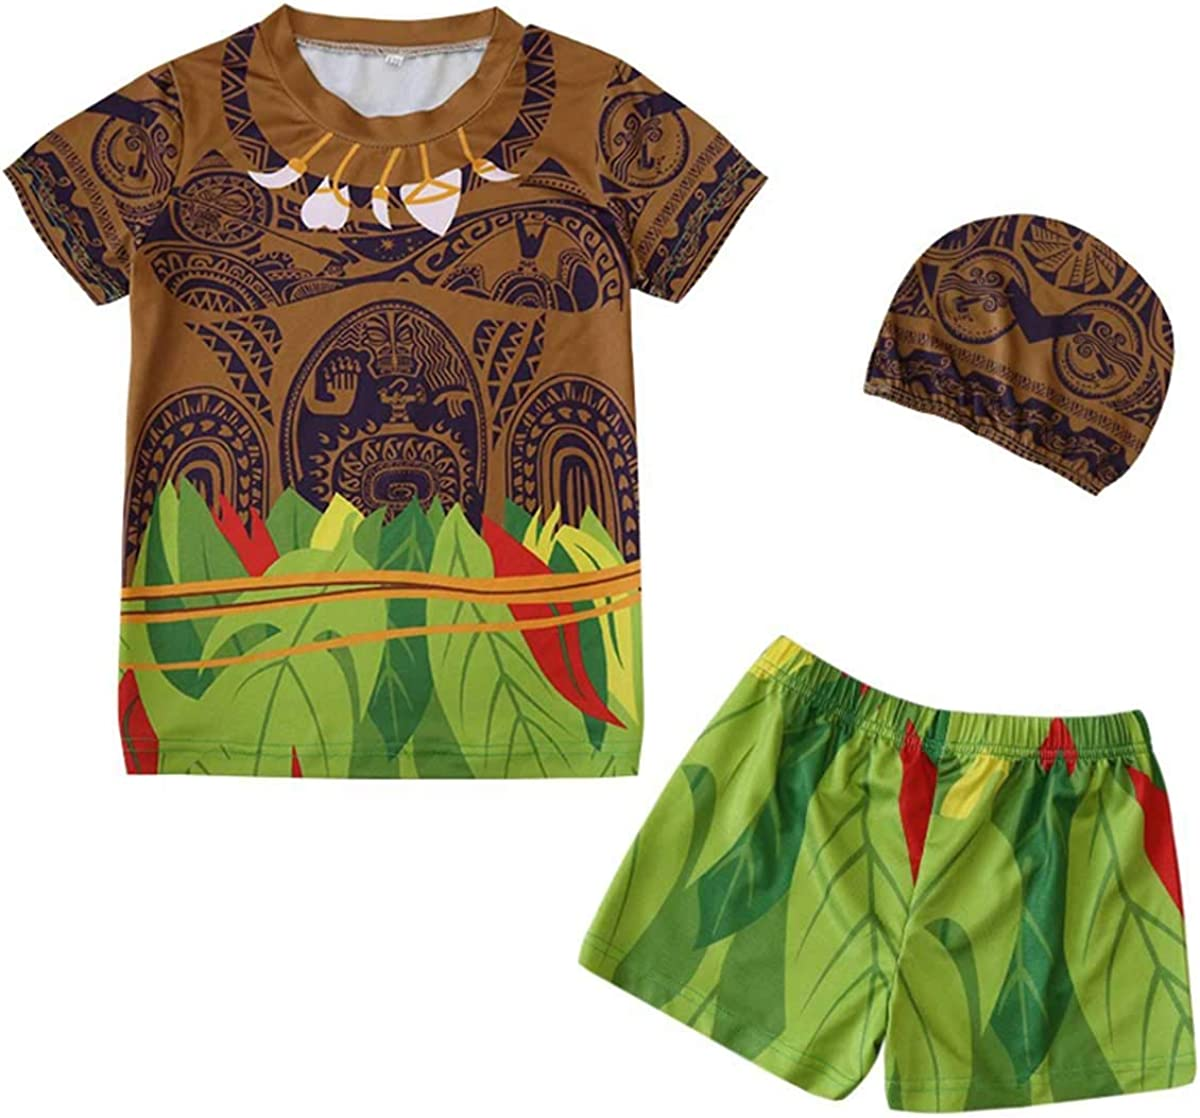 Stay Real Children's Swimsuit Baby Split Cospla Tattoo Boy Moana Omaha Mall Max 90% OFF